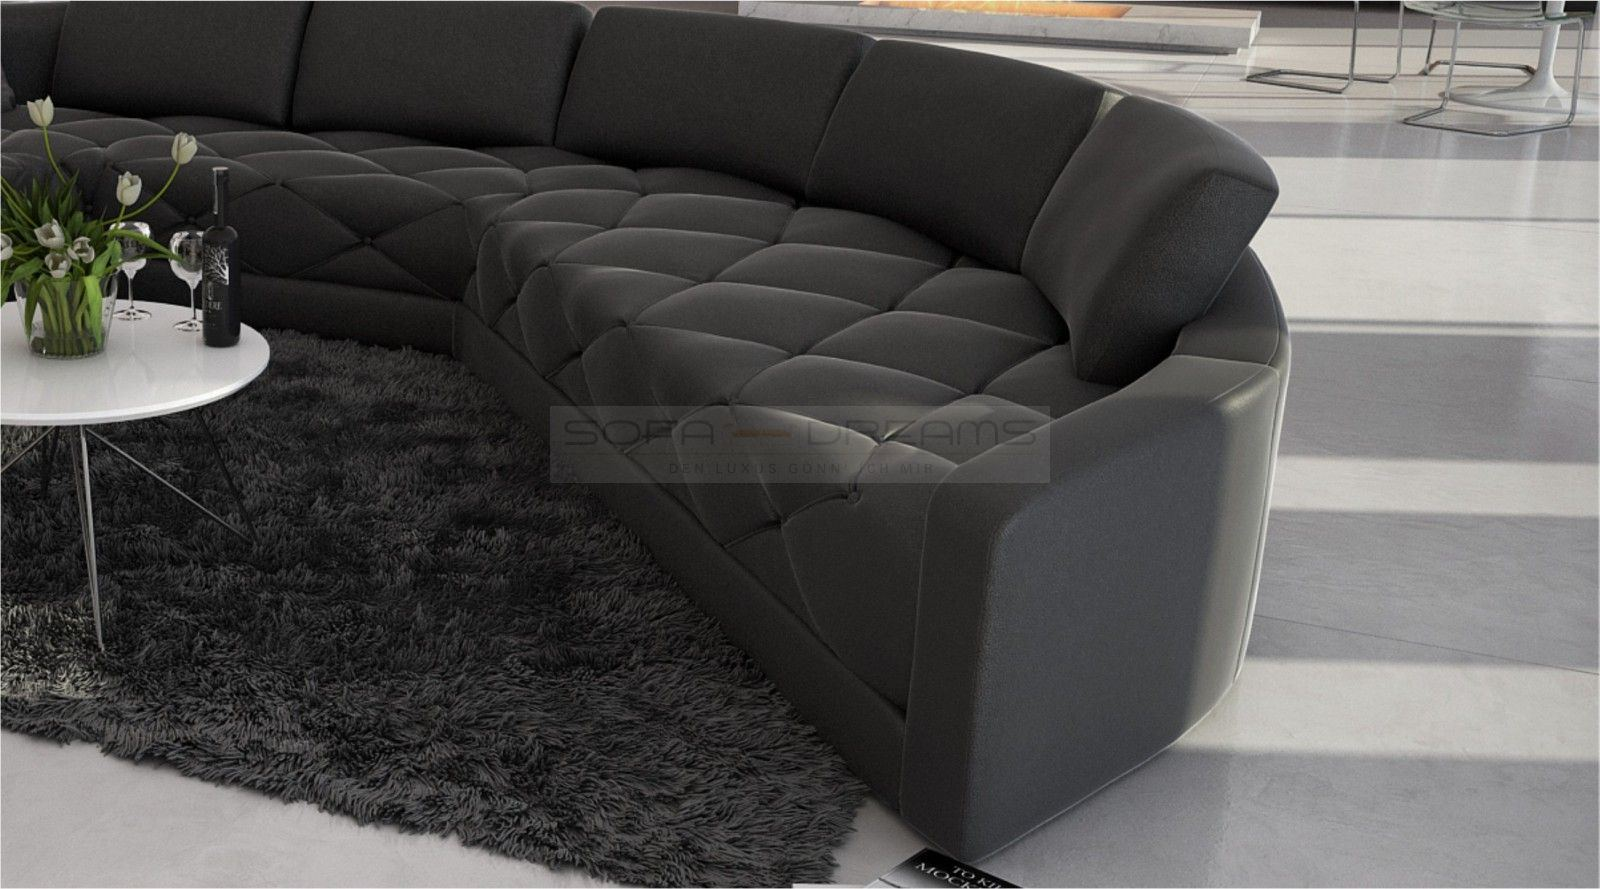 rundsofa secreto gesteppte sitzfl che designersofa luxuscouch leder stoff ebay. Black Bedroom Furniture Sets. Home Design Ideas